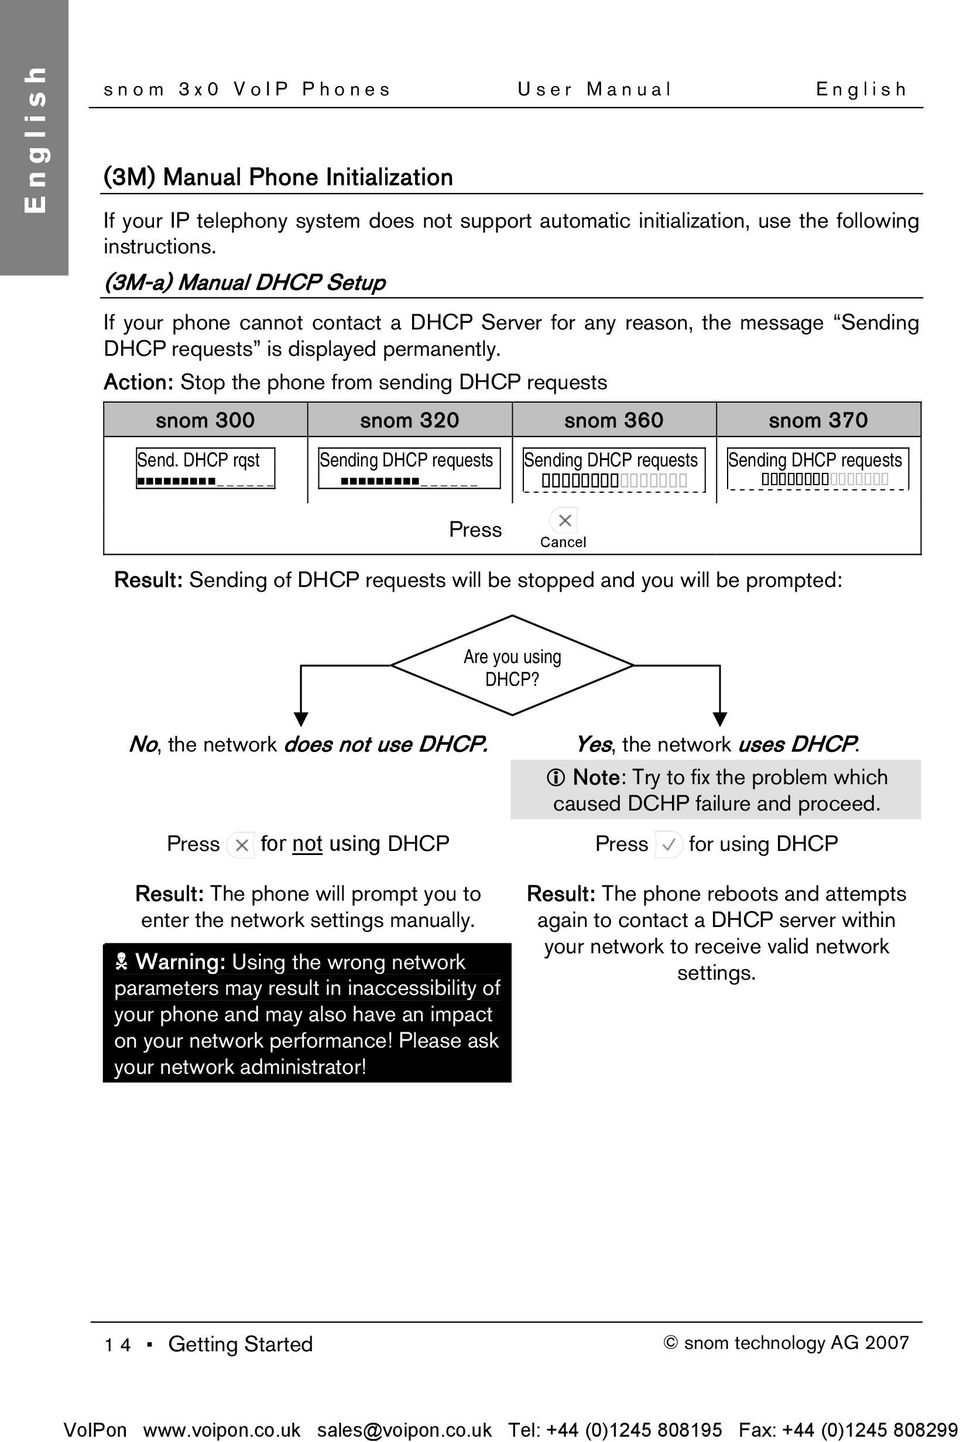 DHCP rqst Sending DHCP requests Sending DHCP requests Sending DHCP requests Cancel Result: Sending of DHCP requests will be stopped and you will be prompted: Are you using DHCP?